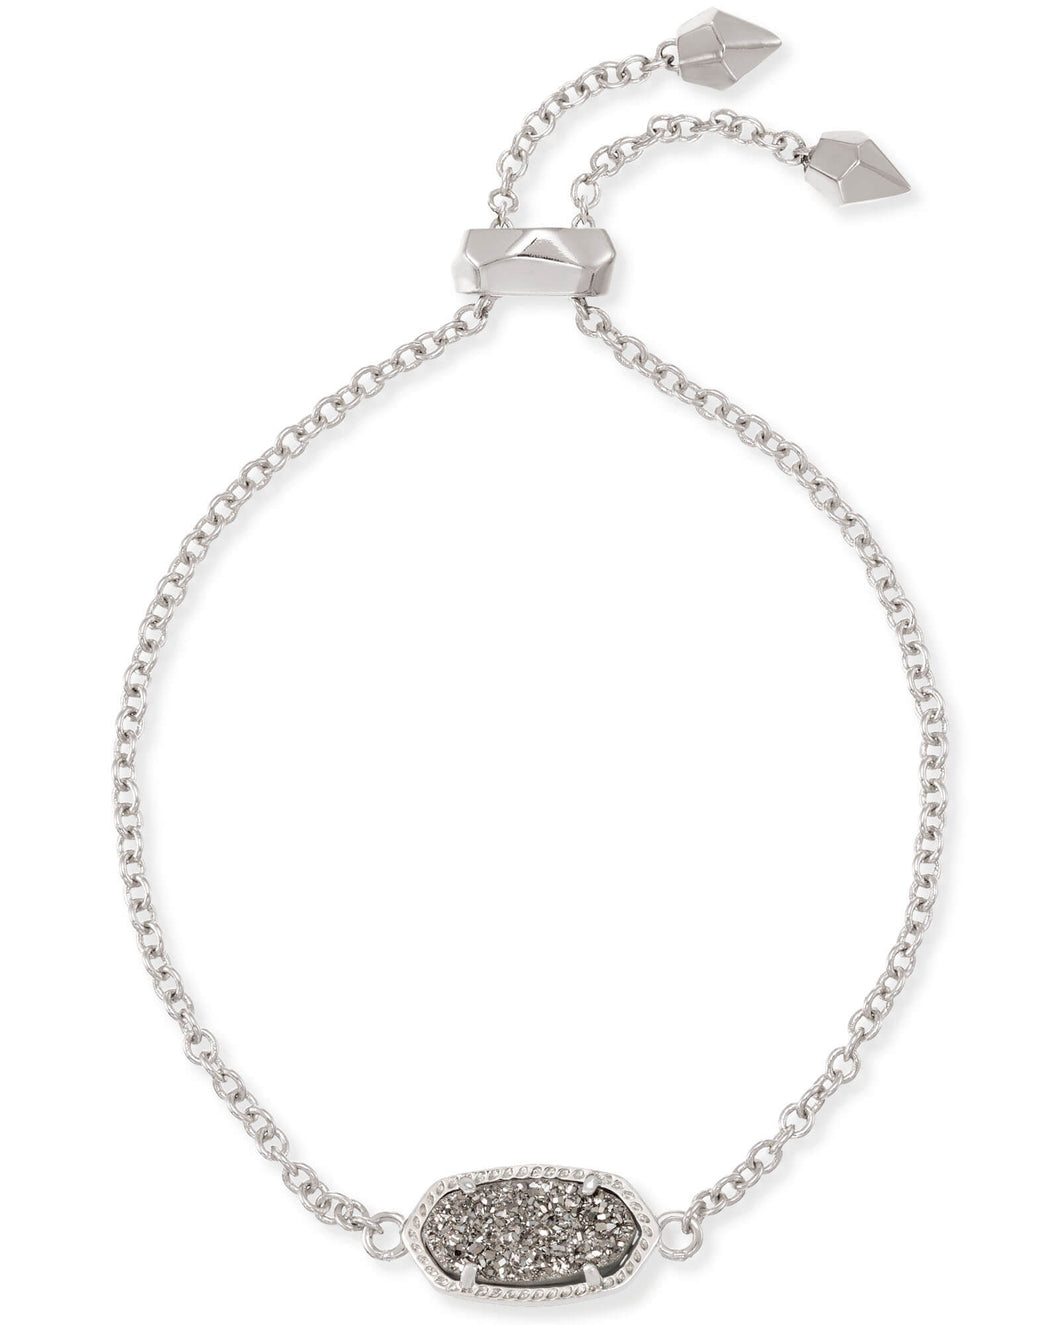 Elaina Silver Adjustable Chain Bracelet in Platinum Drusy